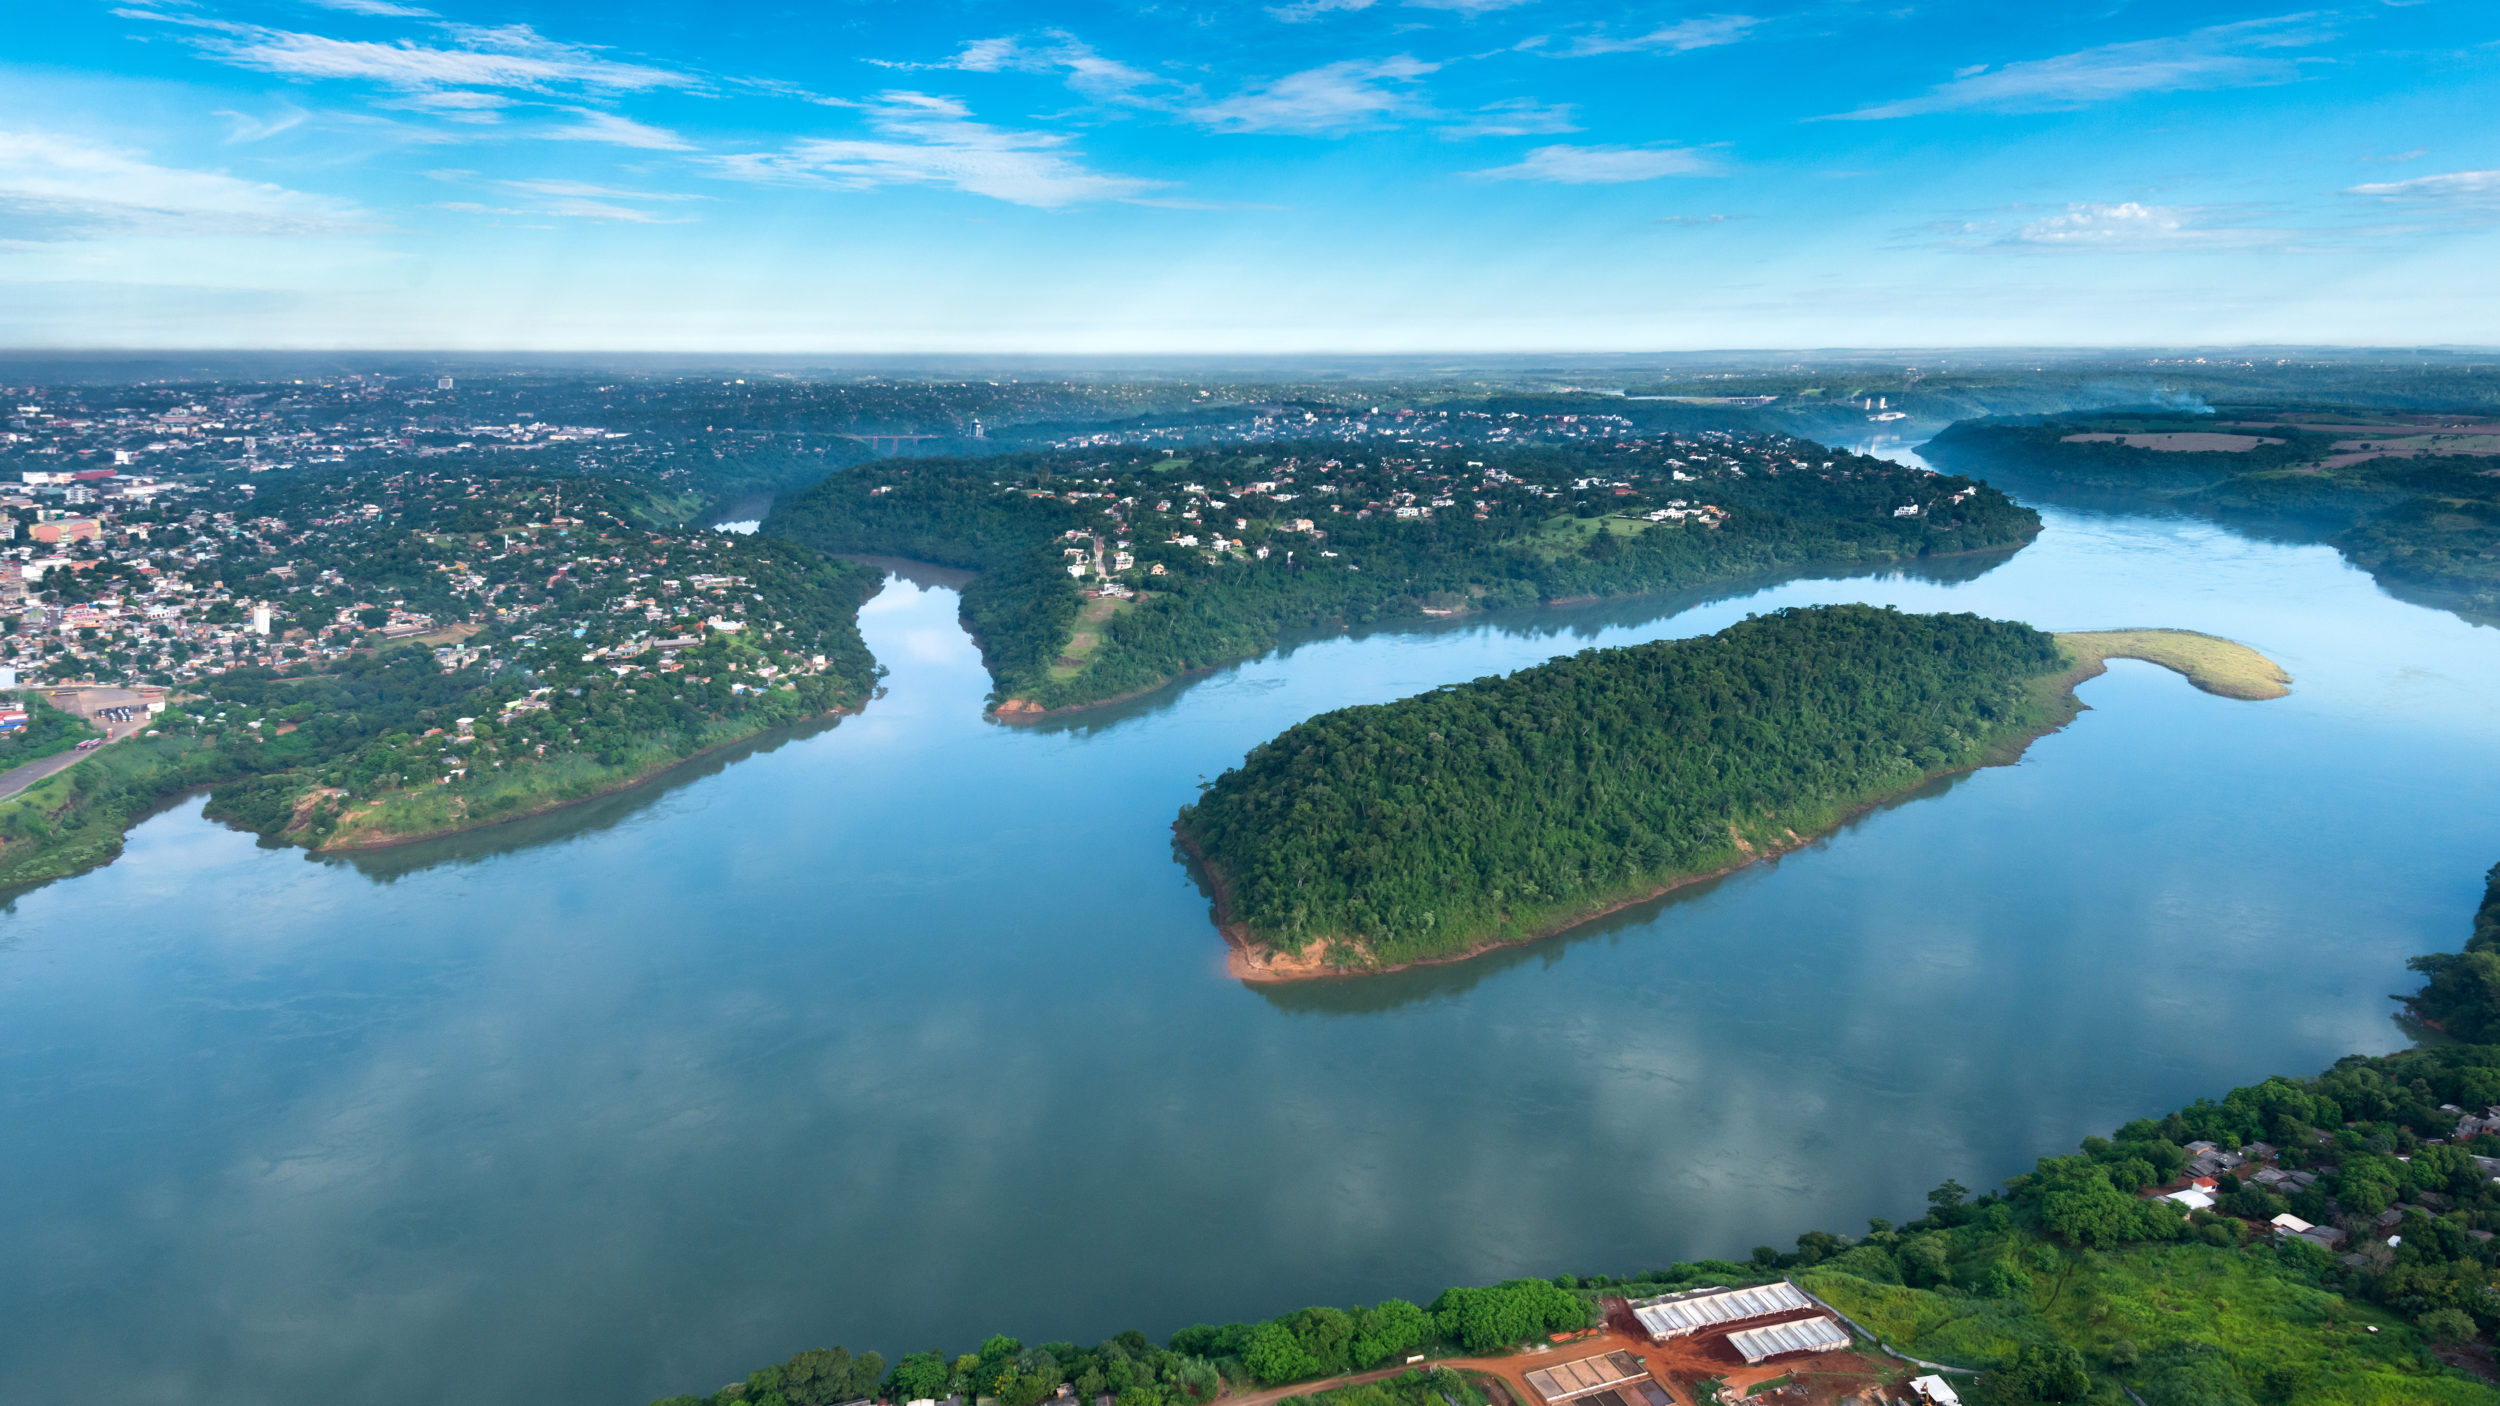 The Paraguay River divides Paraguay into two halves.